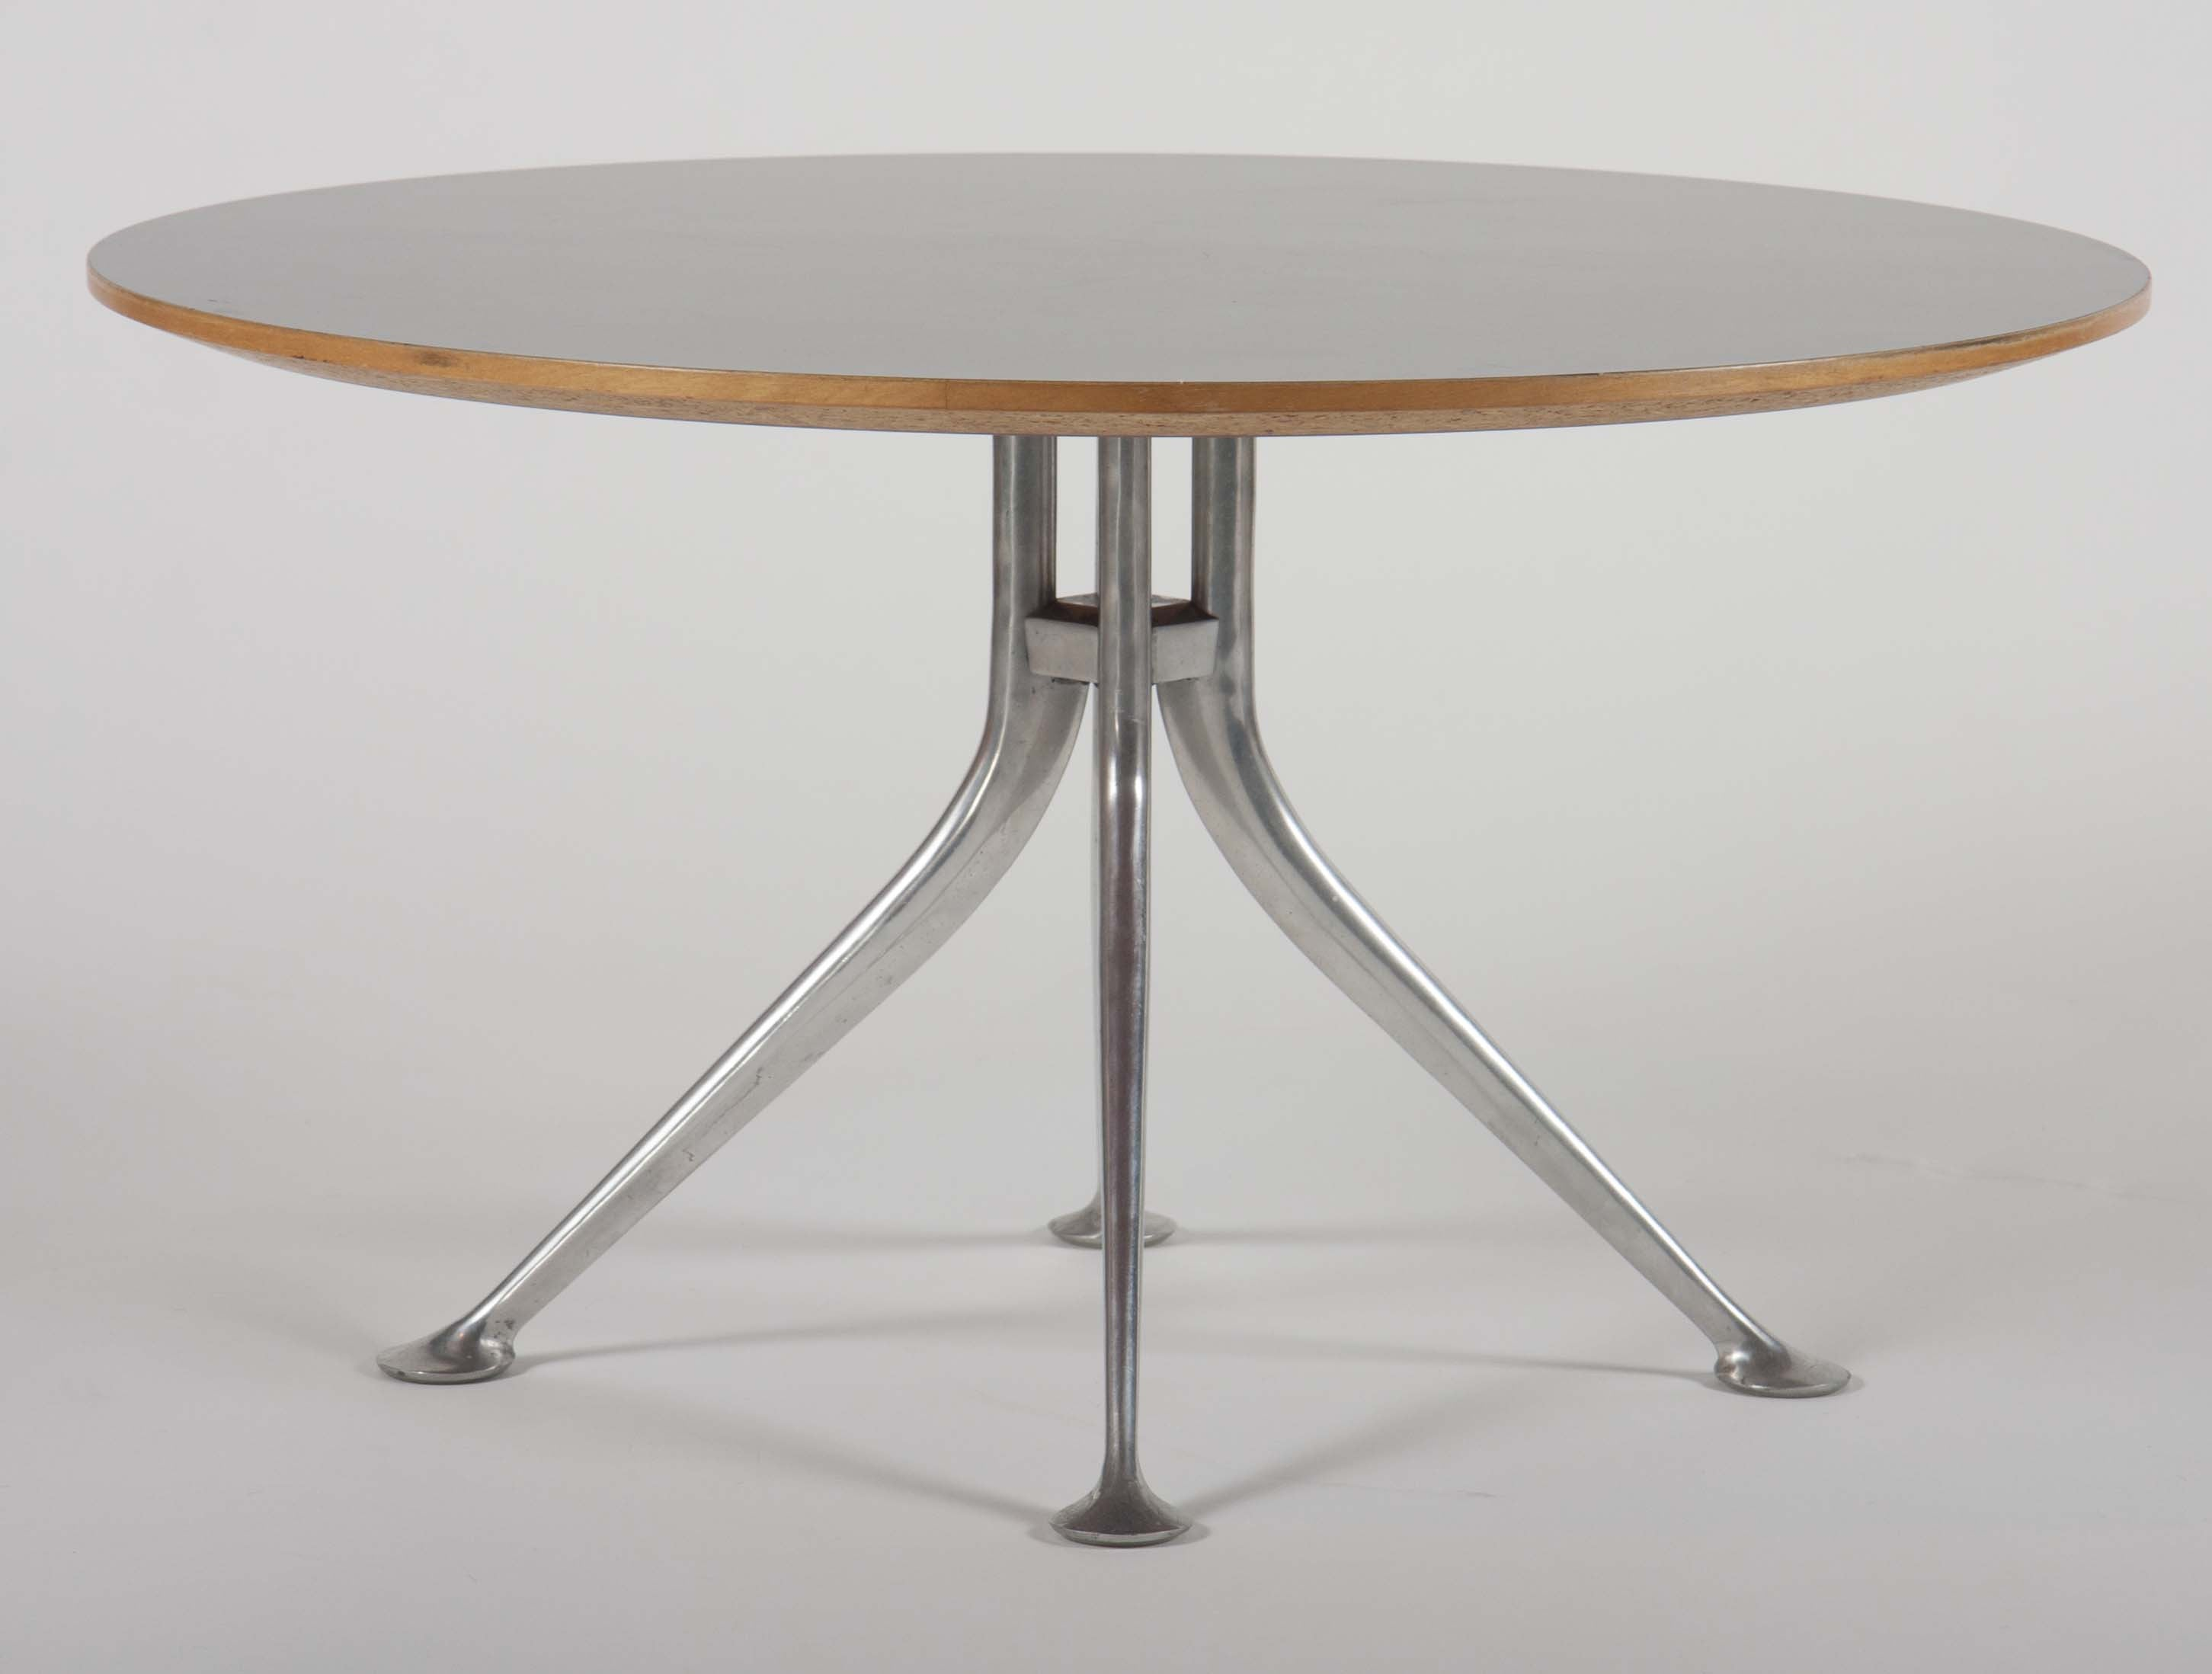 Rare Alexander Girard Round Coffee Table for Herman Miller – Avery